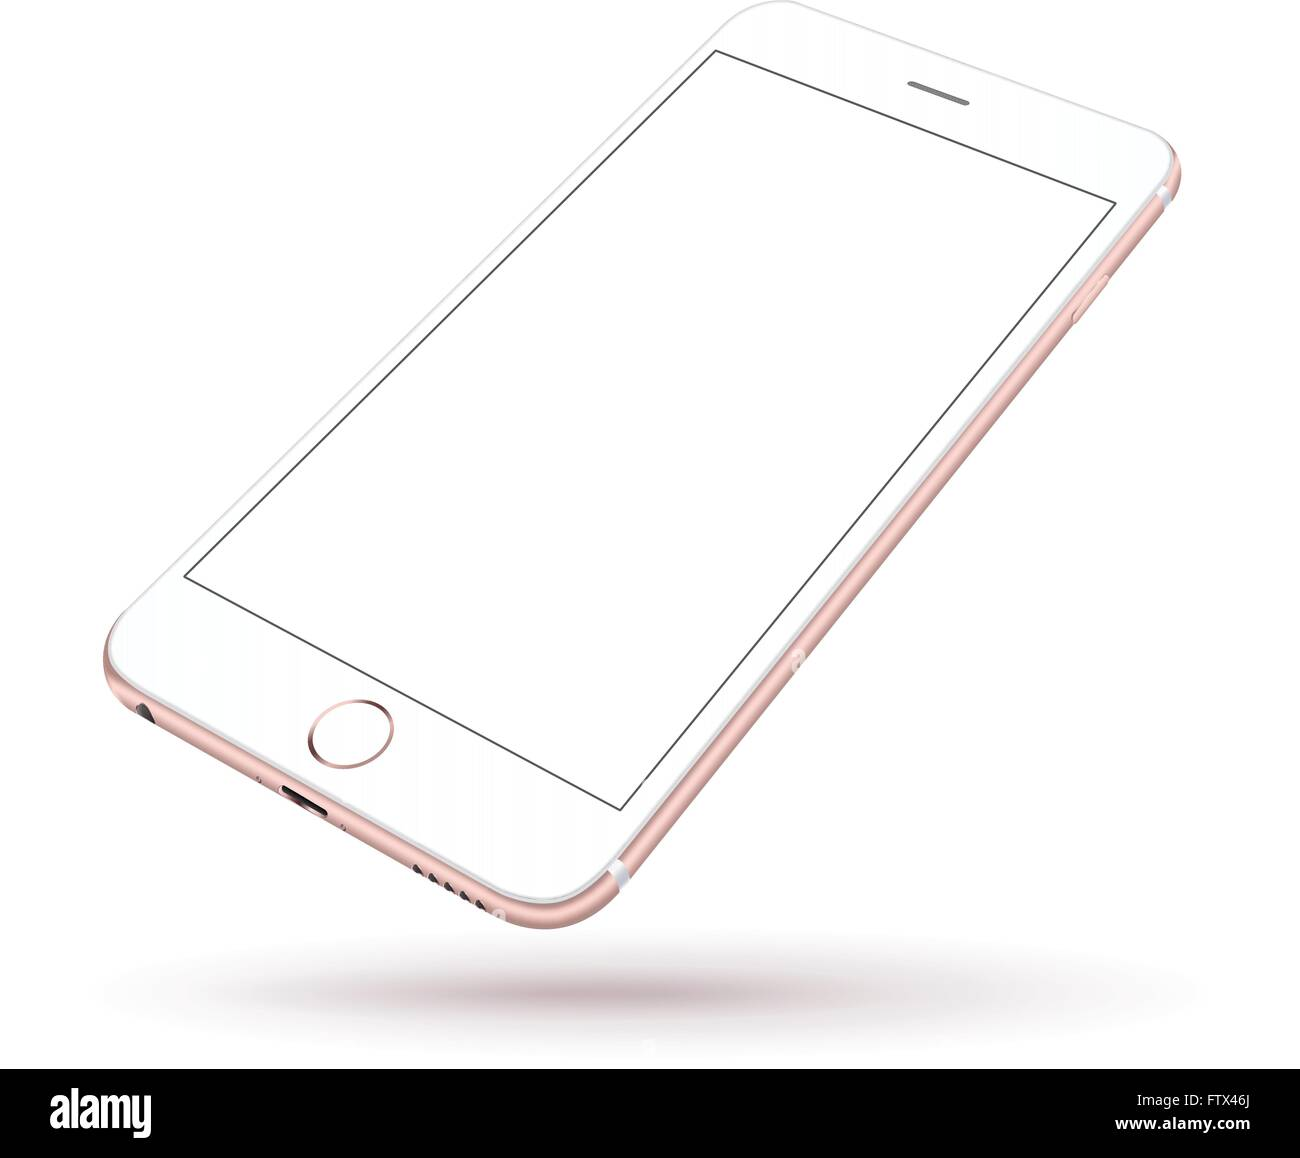 f518caa92b8e5d New realistic mobile phone smartphone collection iphon style mockups with  blank screen isolated on white background. Vector illu